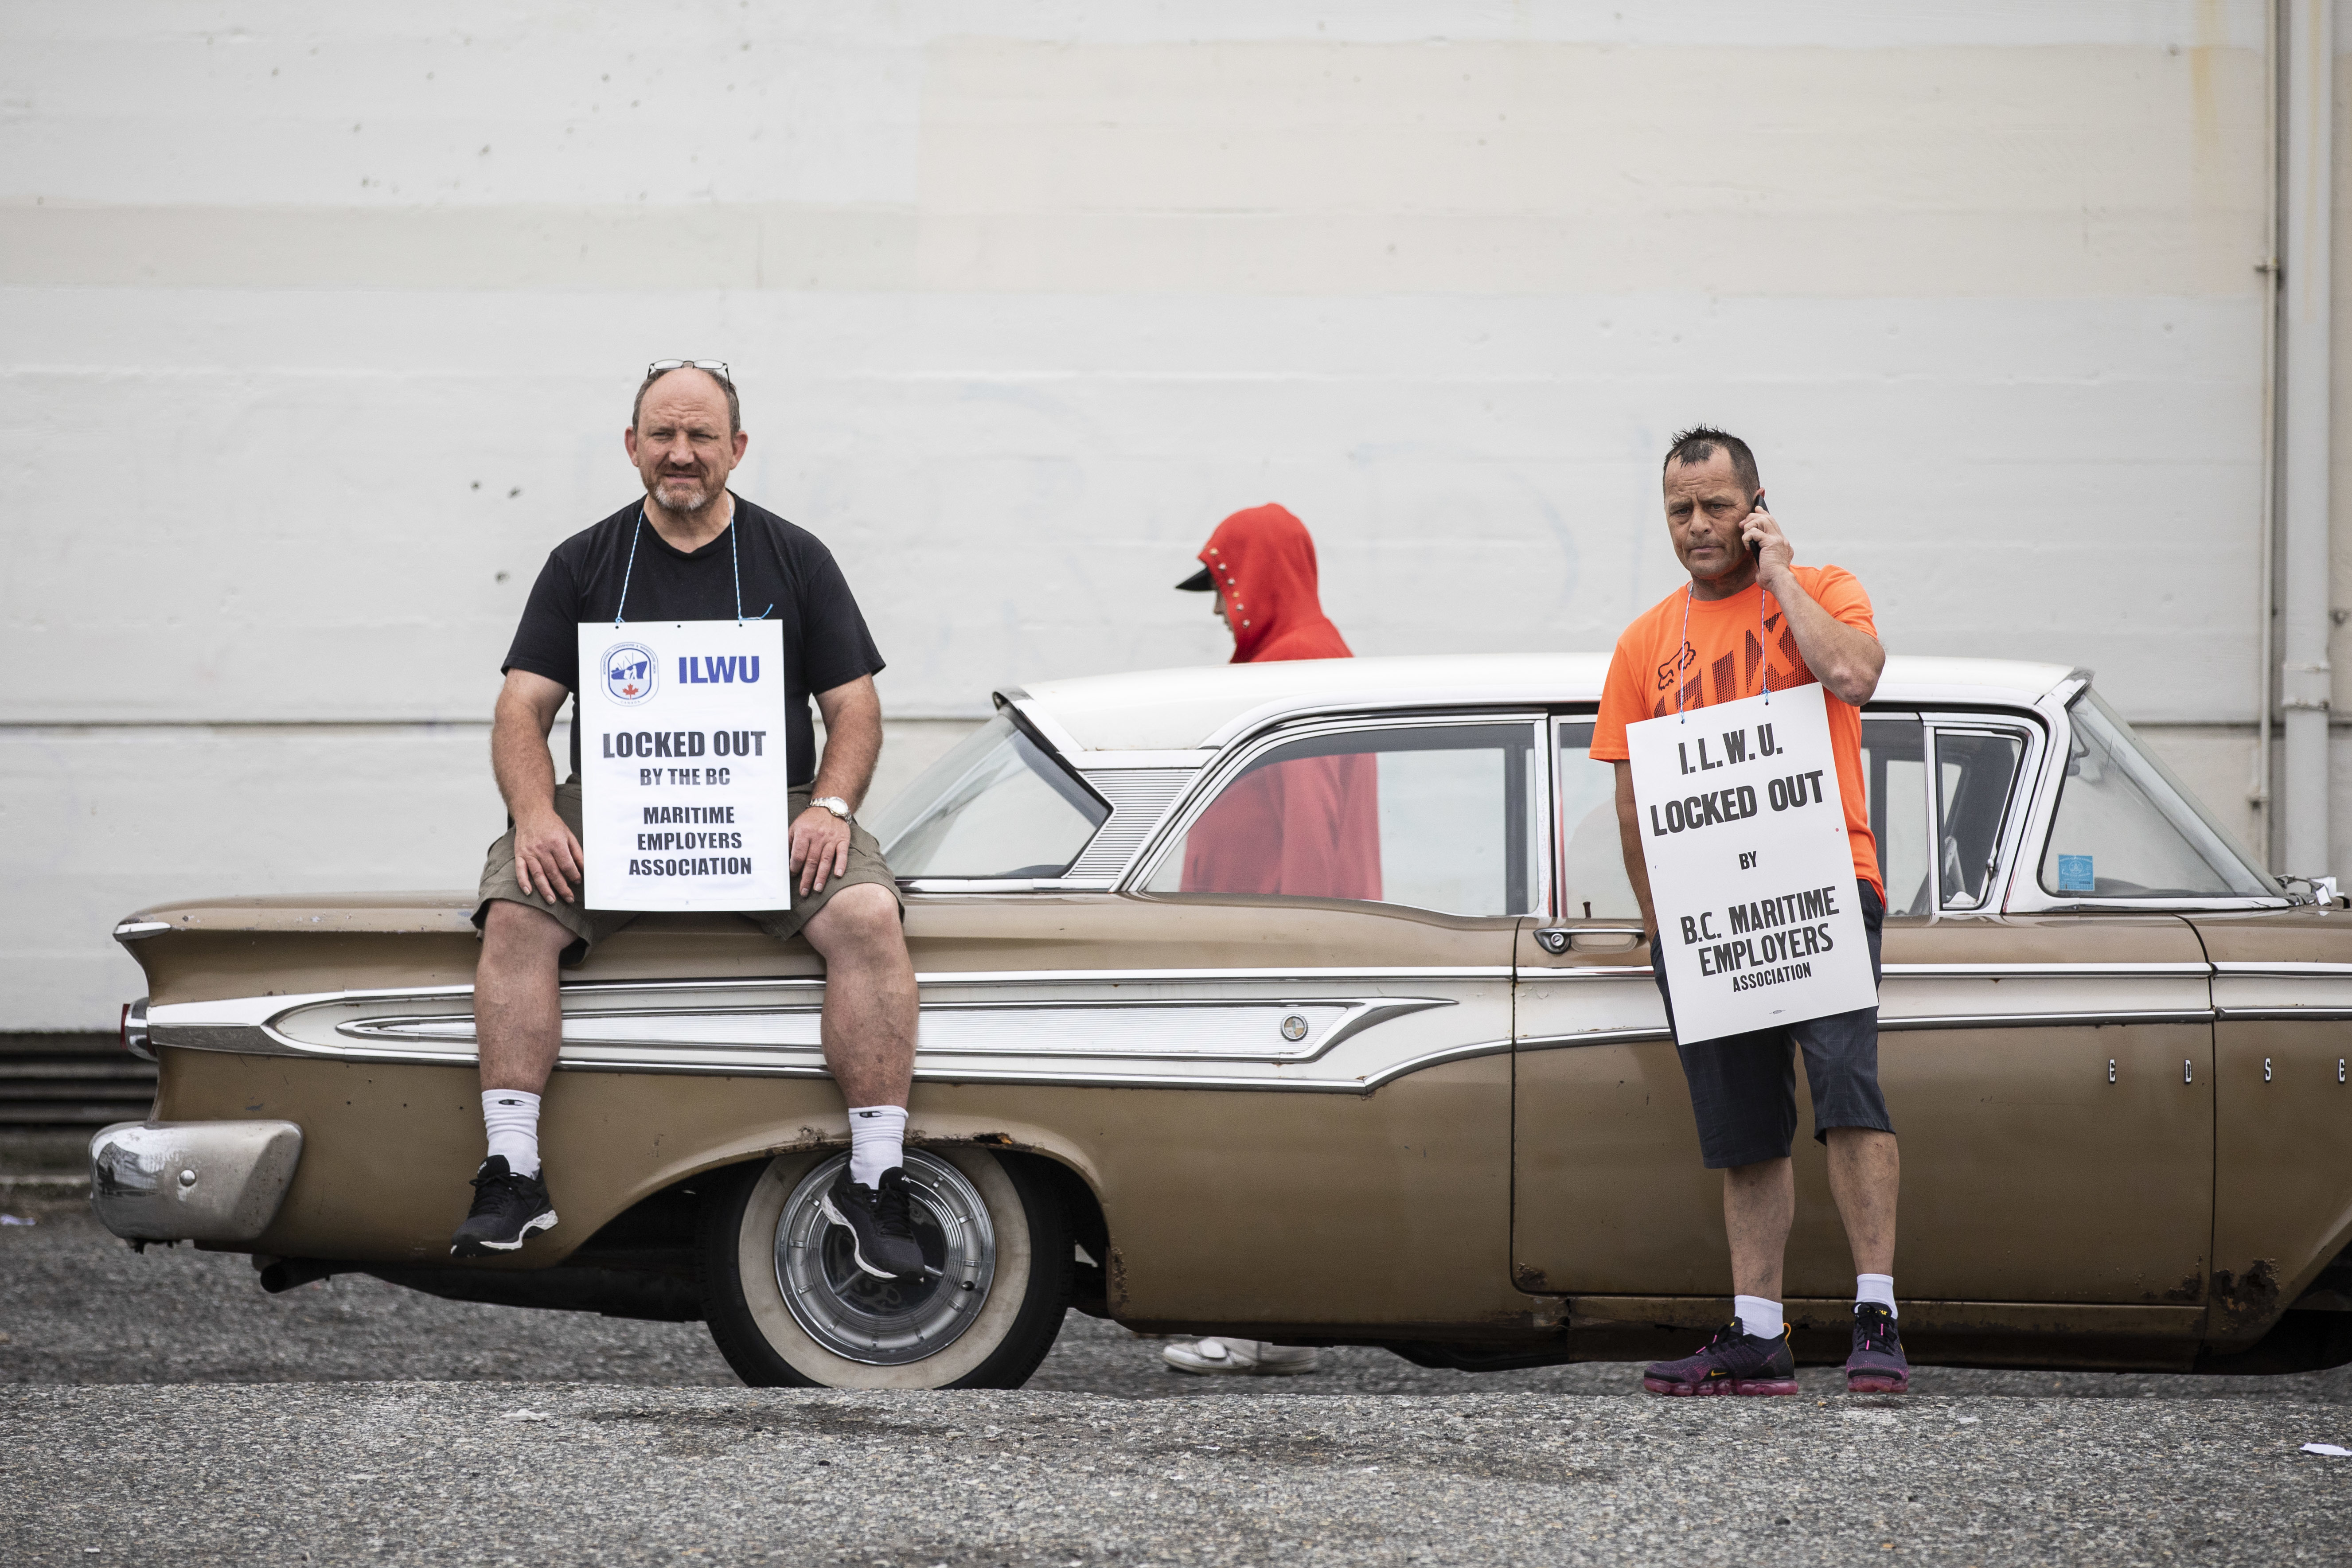 Port workers picket outside of the B.C. Maritime Employers Association in Vancouver on May 30, 2019. (Ben Nelms/CBC)